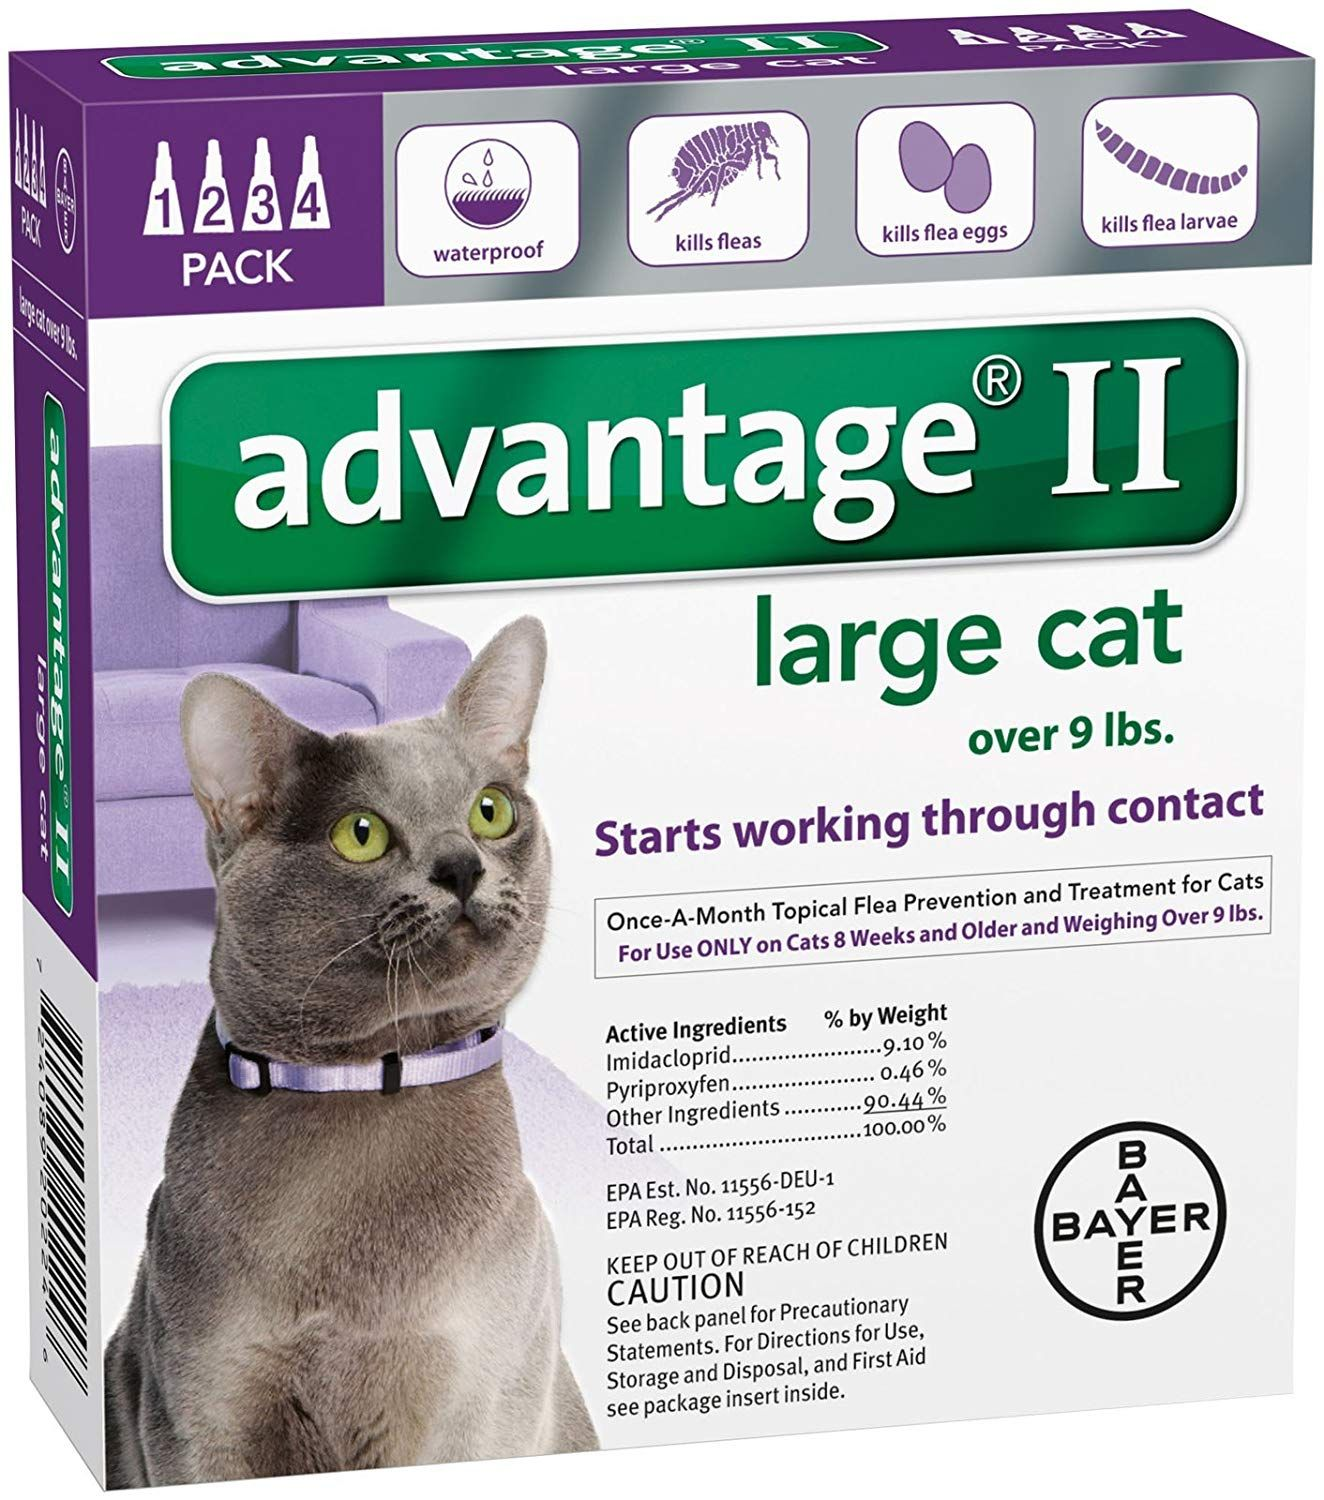 Advantage Ii Large Cat 4 Pack Wonderful Of You To Drop By To See Our Photo This Is Our Affiliate Link In 2020 Large Cats Cat Fleas Cat Pet Supplies